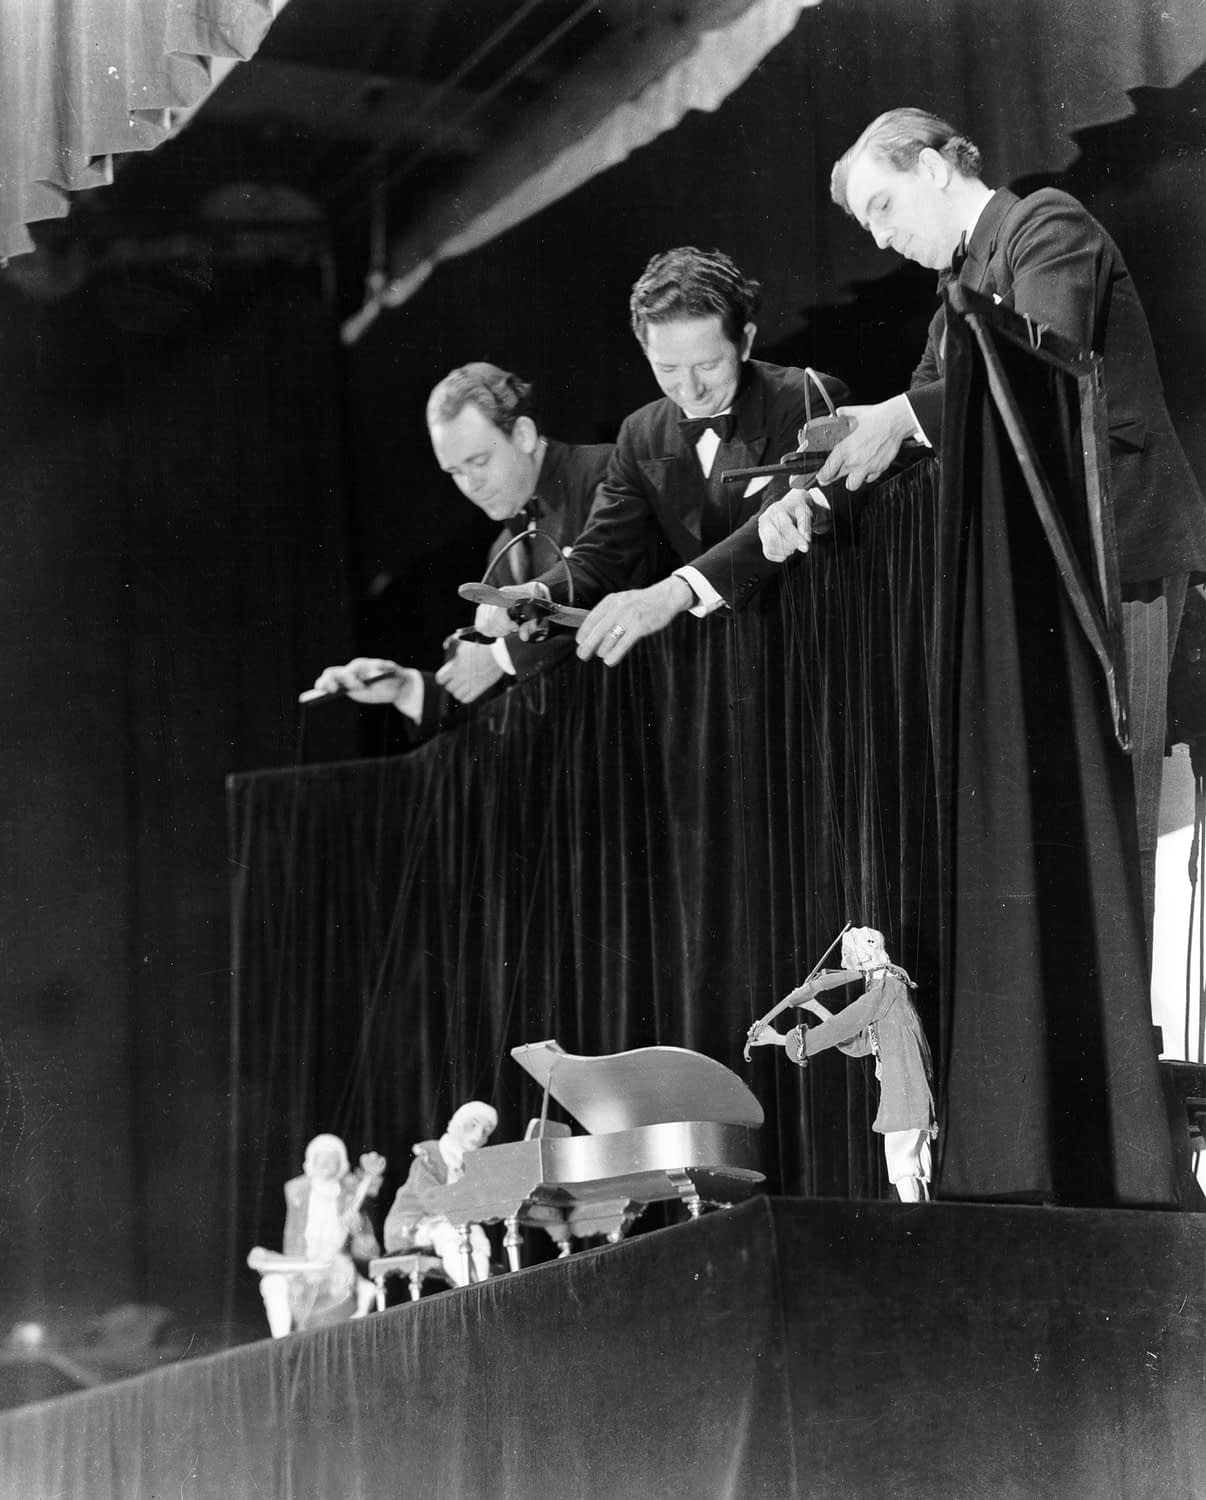 wearing tuxedos, the Yale Puppeteers hang the Haydn Trio puppets over a black curtain at the Barbizon Plaza